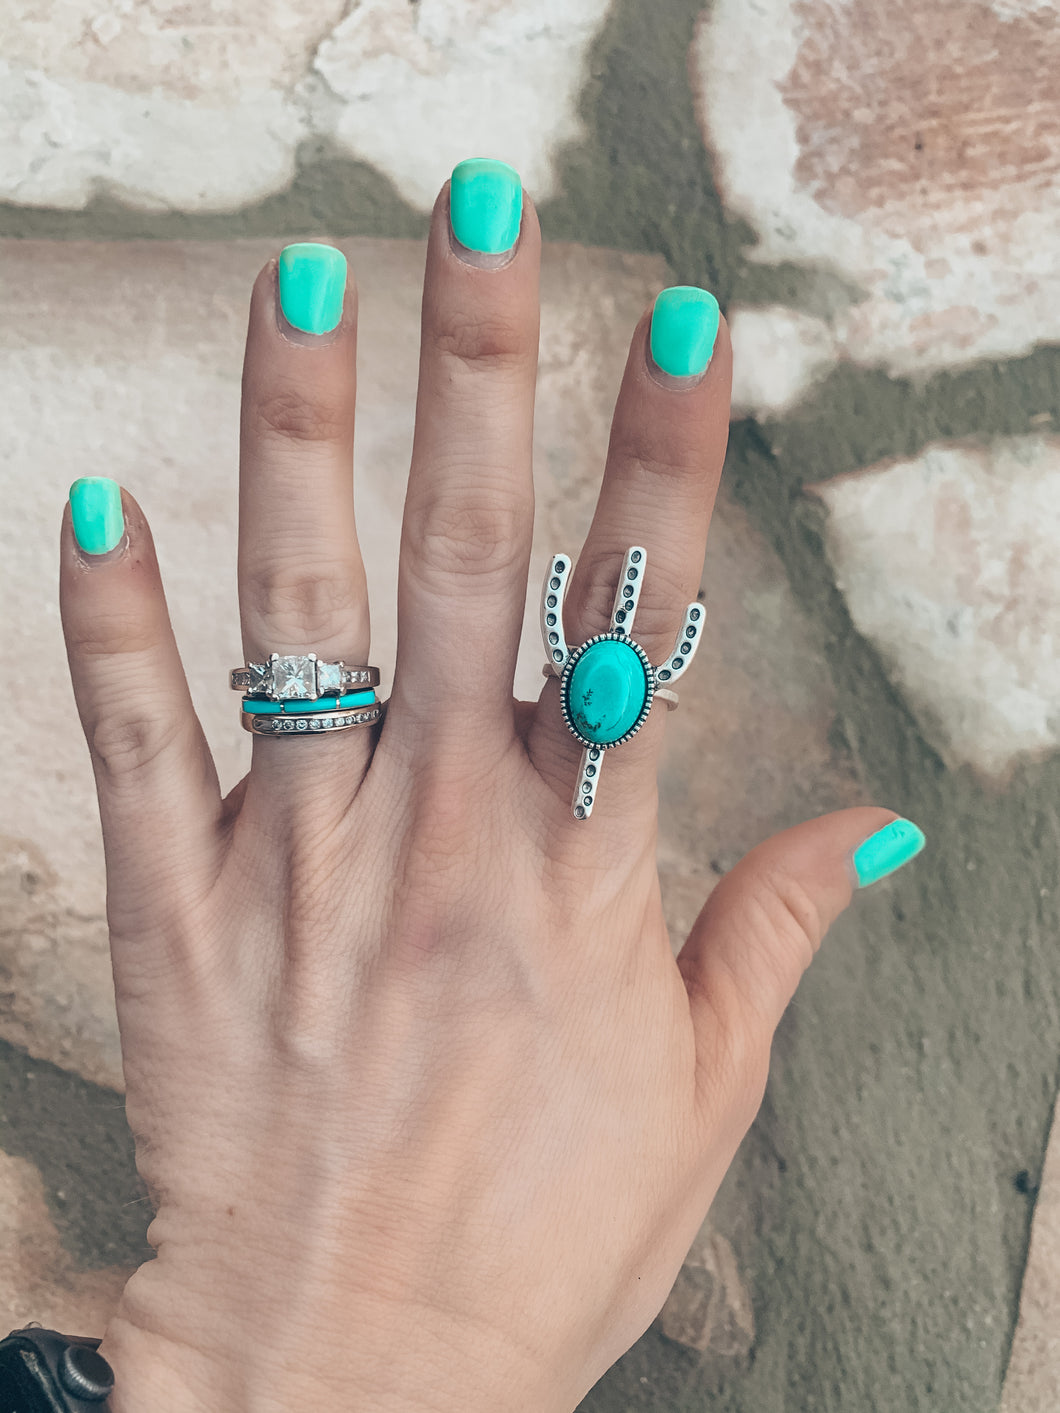 The Turquoise Cactus Ring